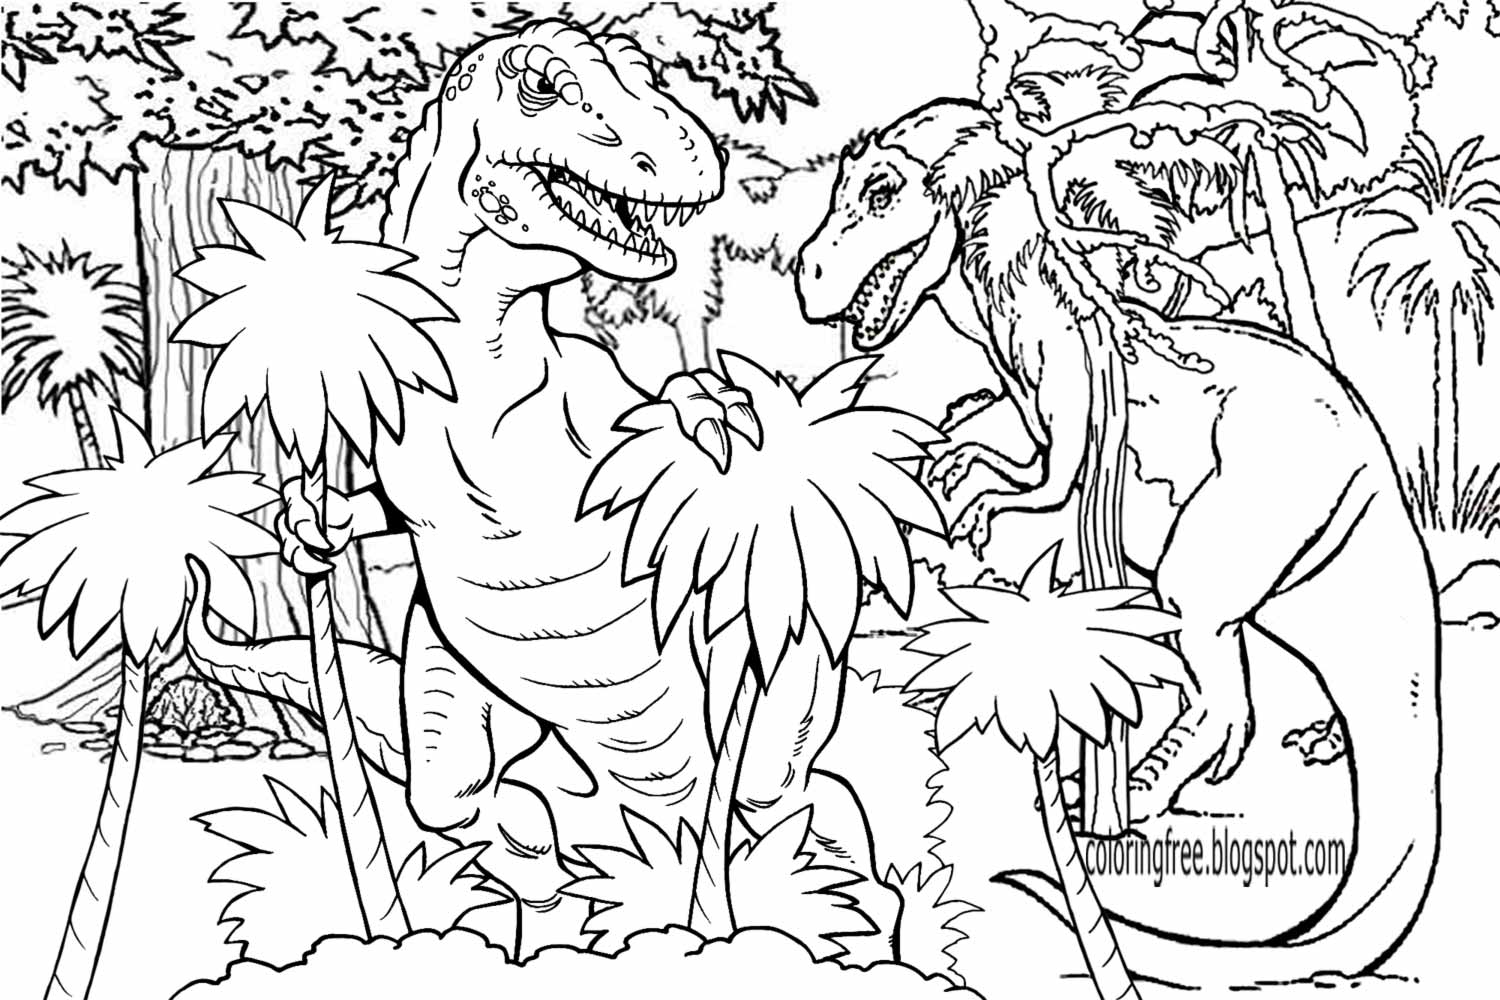 colouring in dinosaurs printable dinosaur coloring pages for kids in colouring dinosaurs